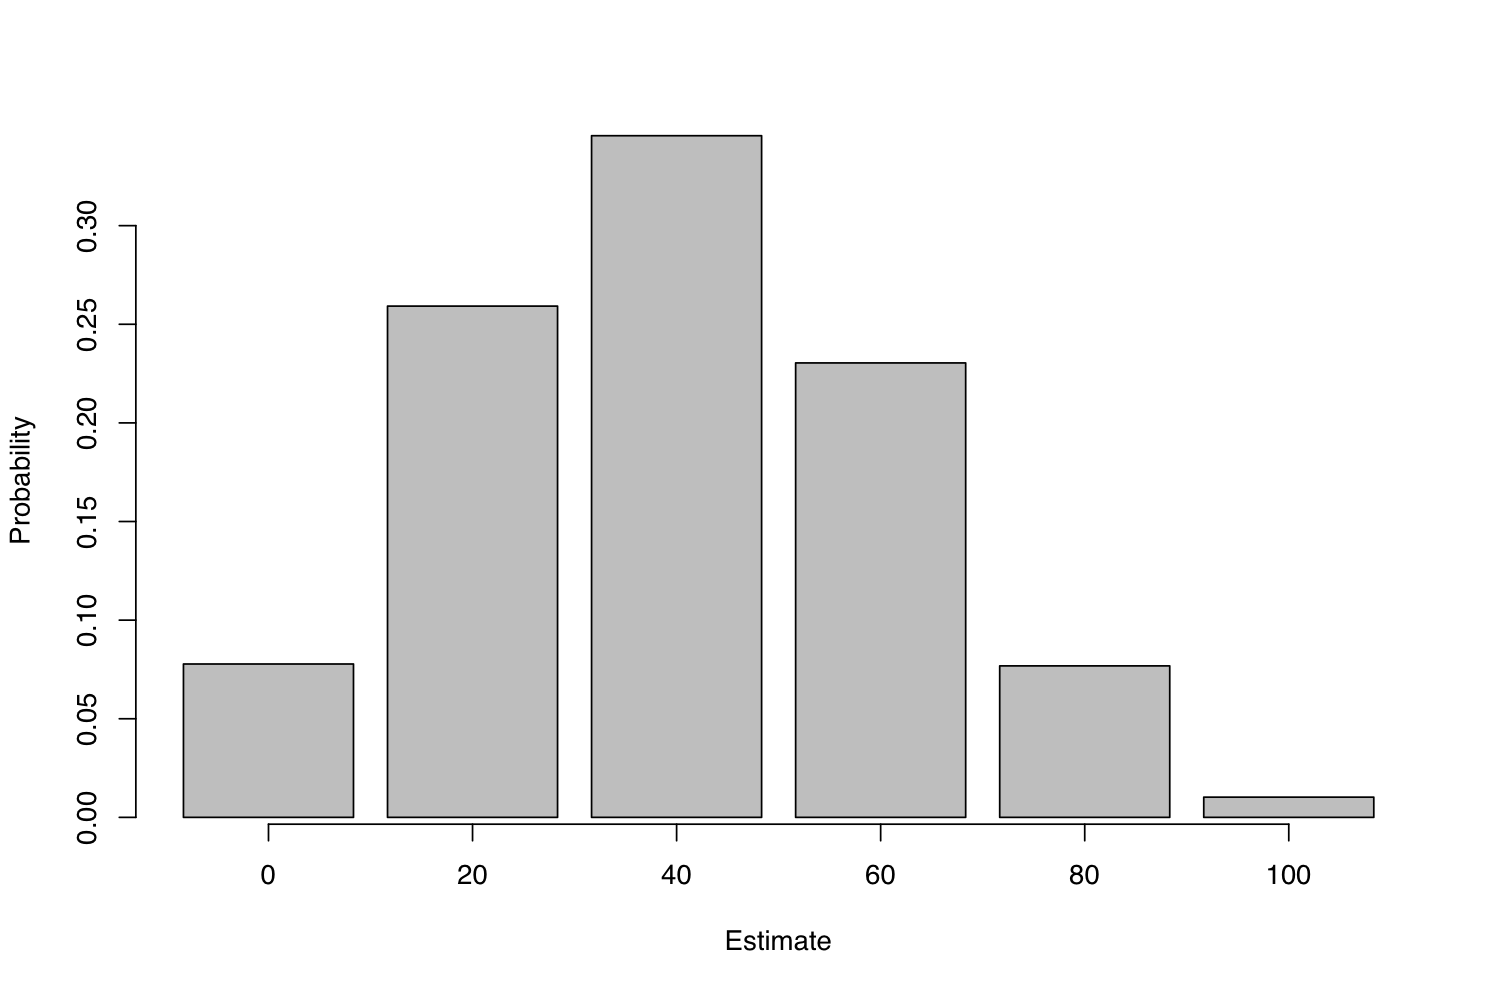 Histogram of sampling distribution.